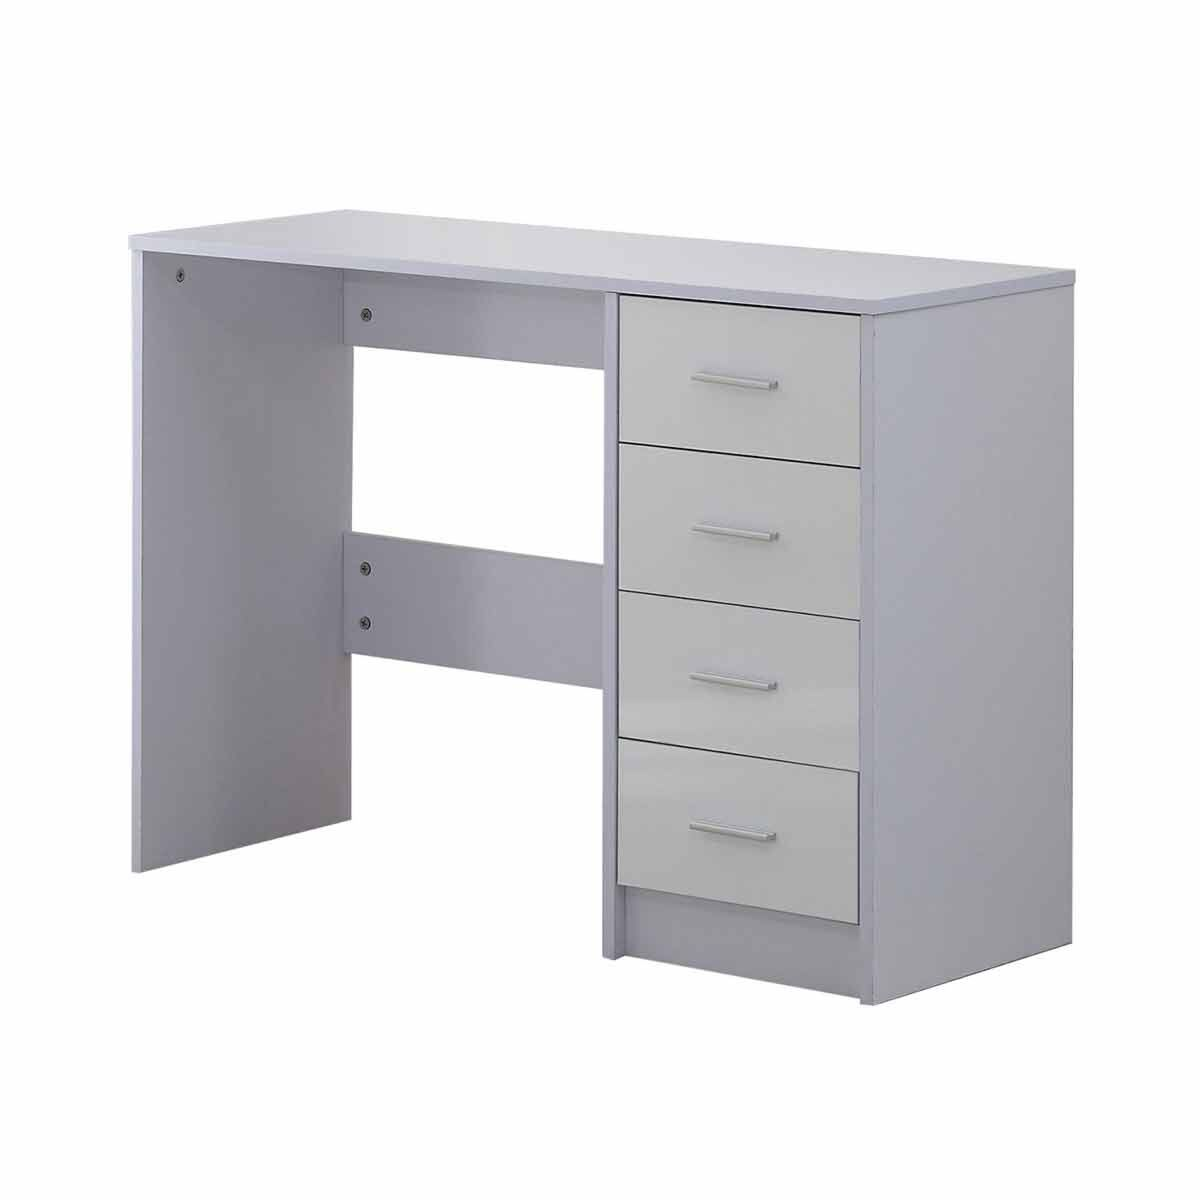 Artemis High Gloss Desk with 4 Drawers